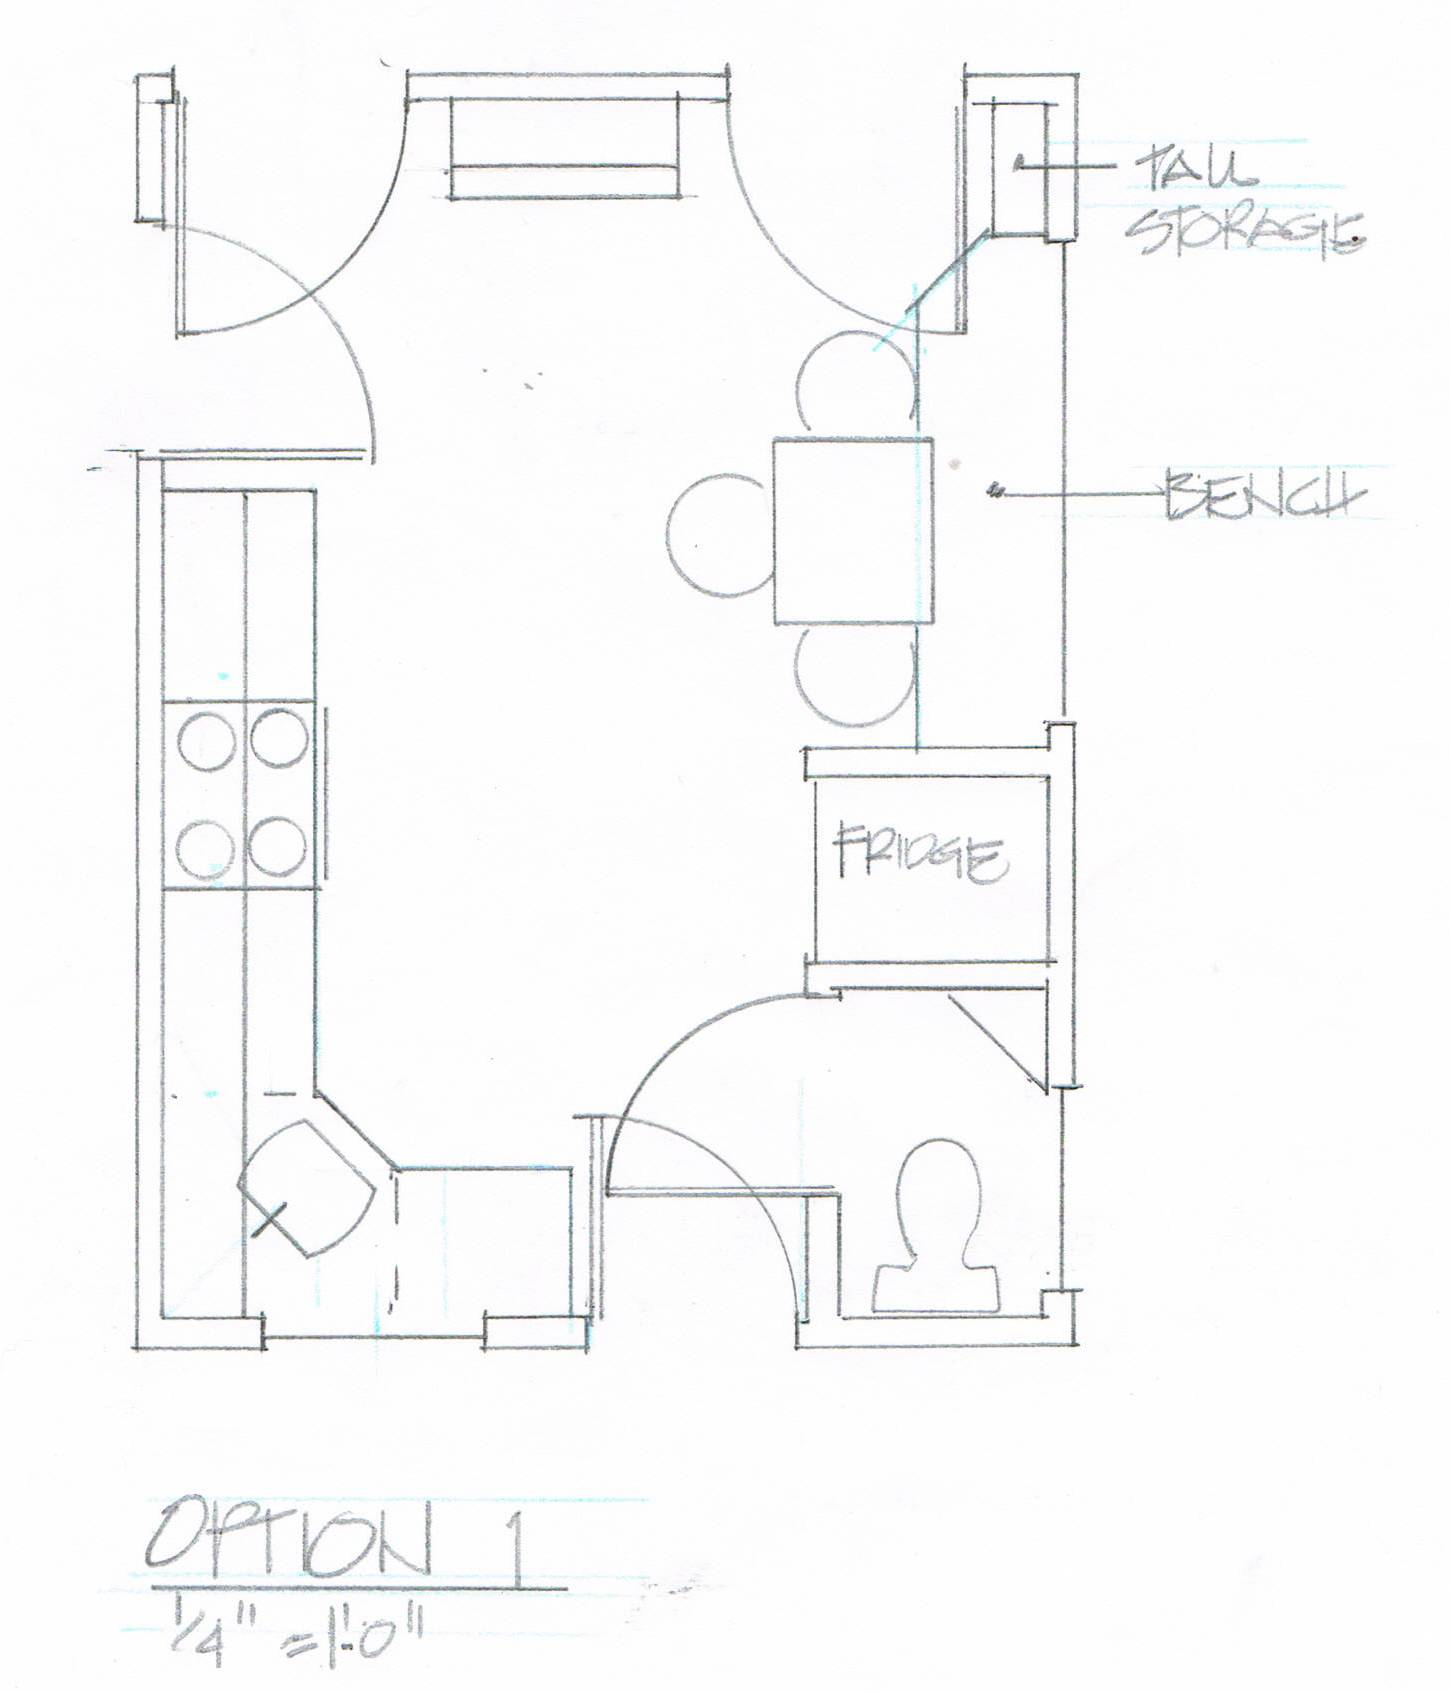 Toilet Detail Drawing at GetDrawings com | Free for personal use